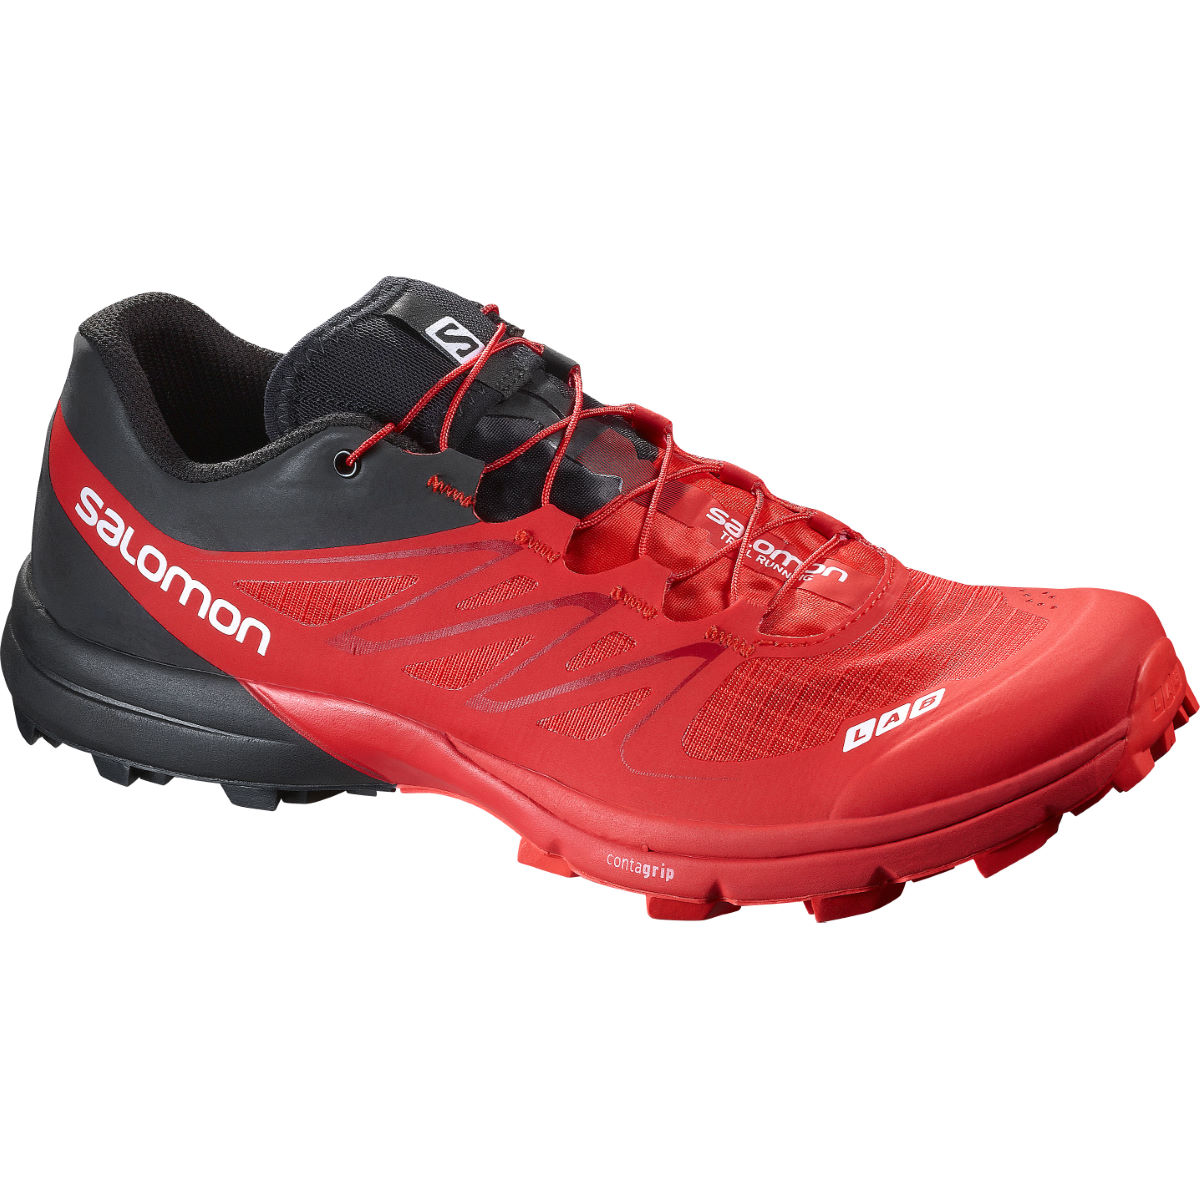 Chaussures Salomon S-Lab Sense 5 Ultra SG (AH16) - 10 UK Red/Black/White Chaussures de running trail